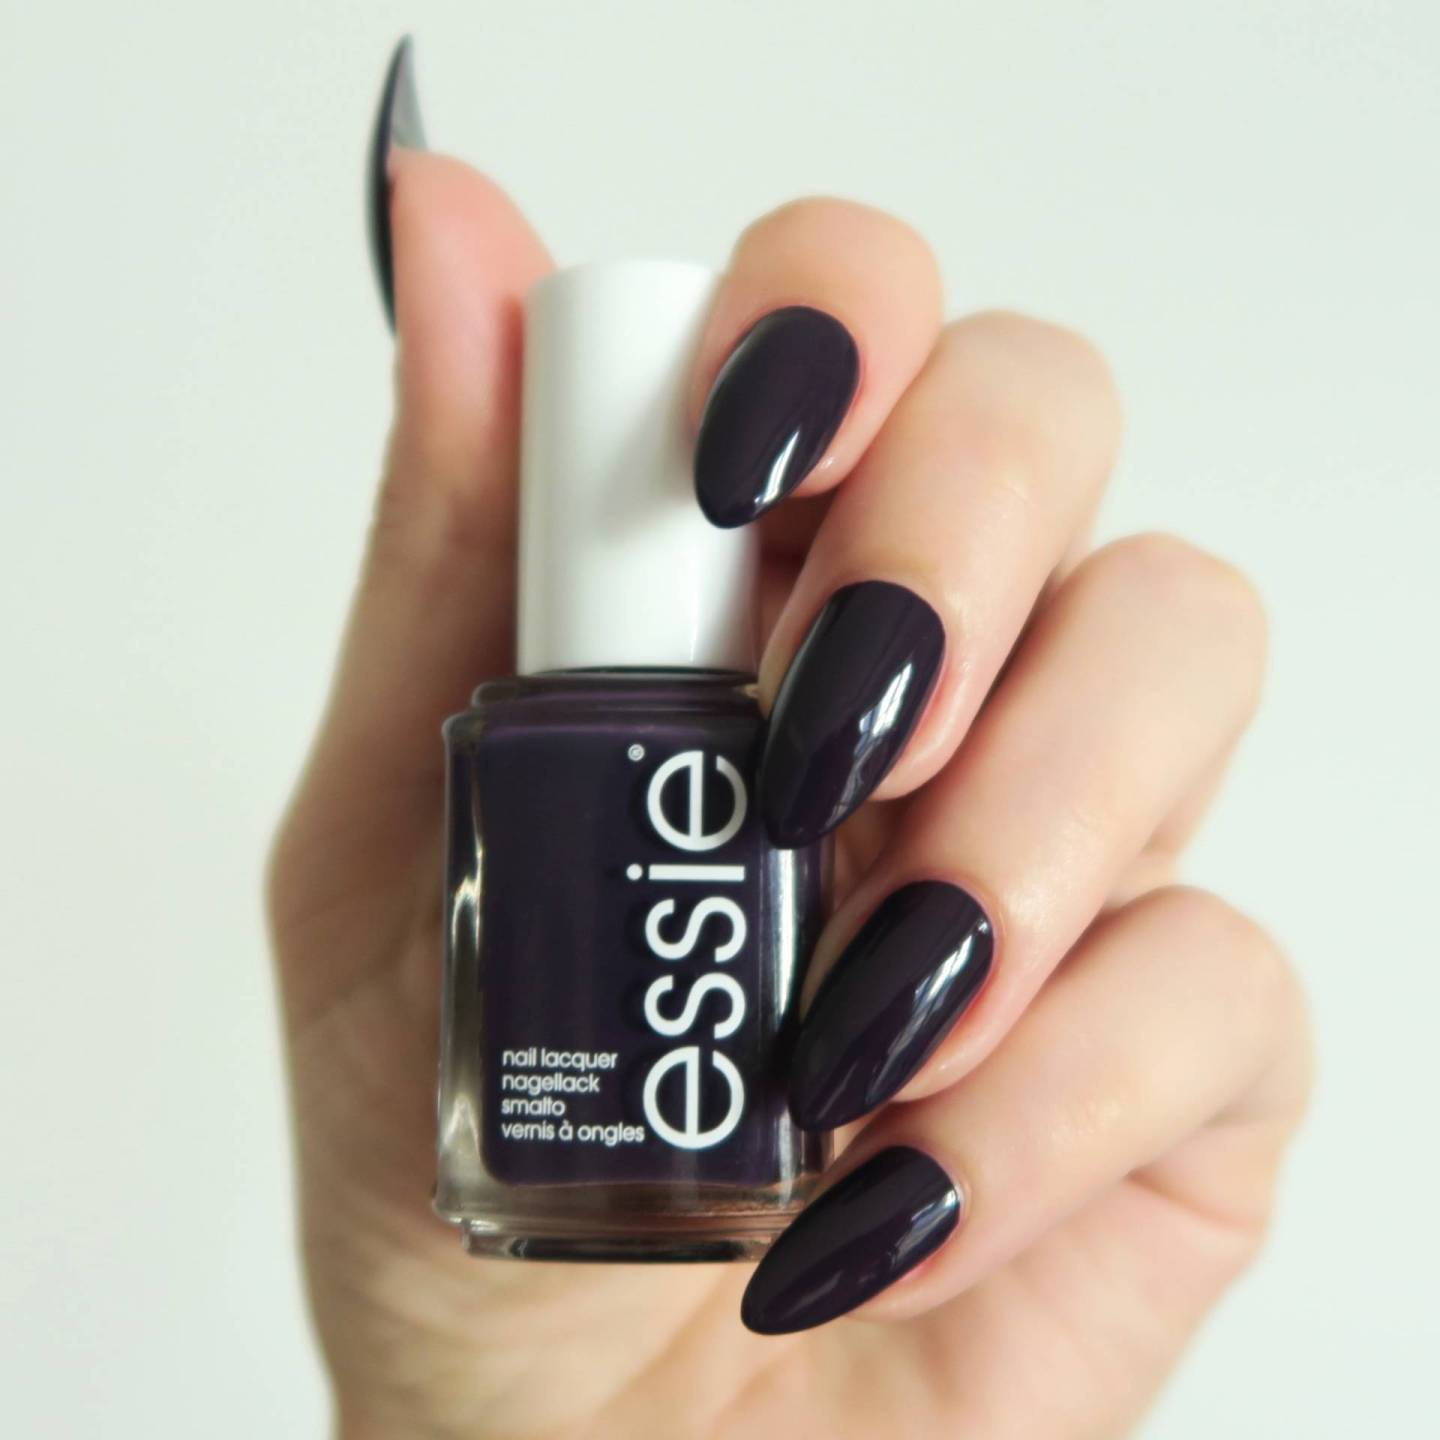 Essie Fall Collection 2016 Tokyo Review Kimono Over - Talonted Lex